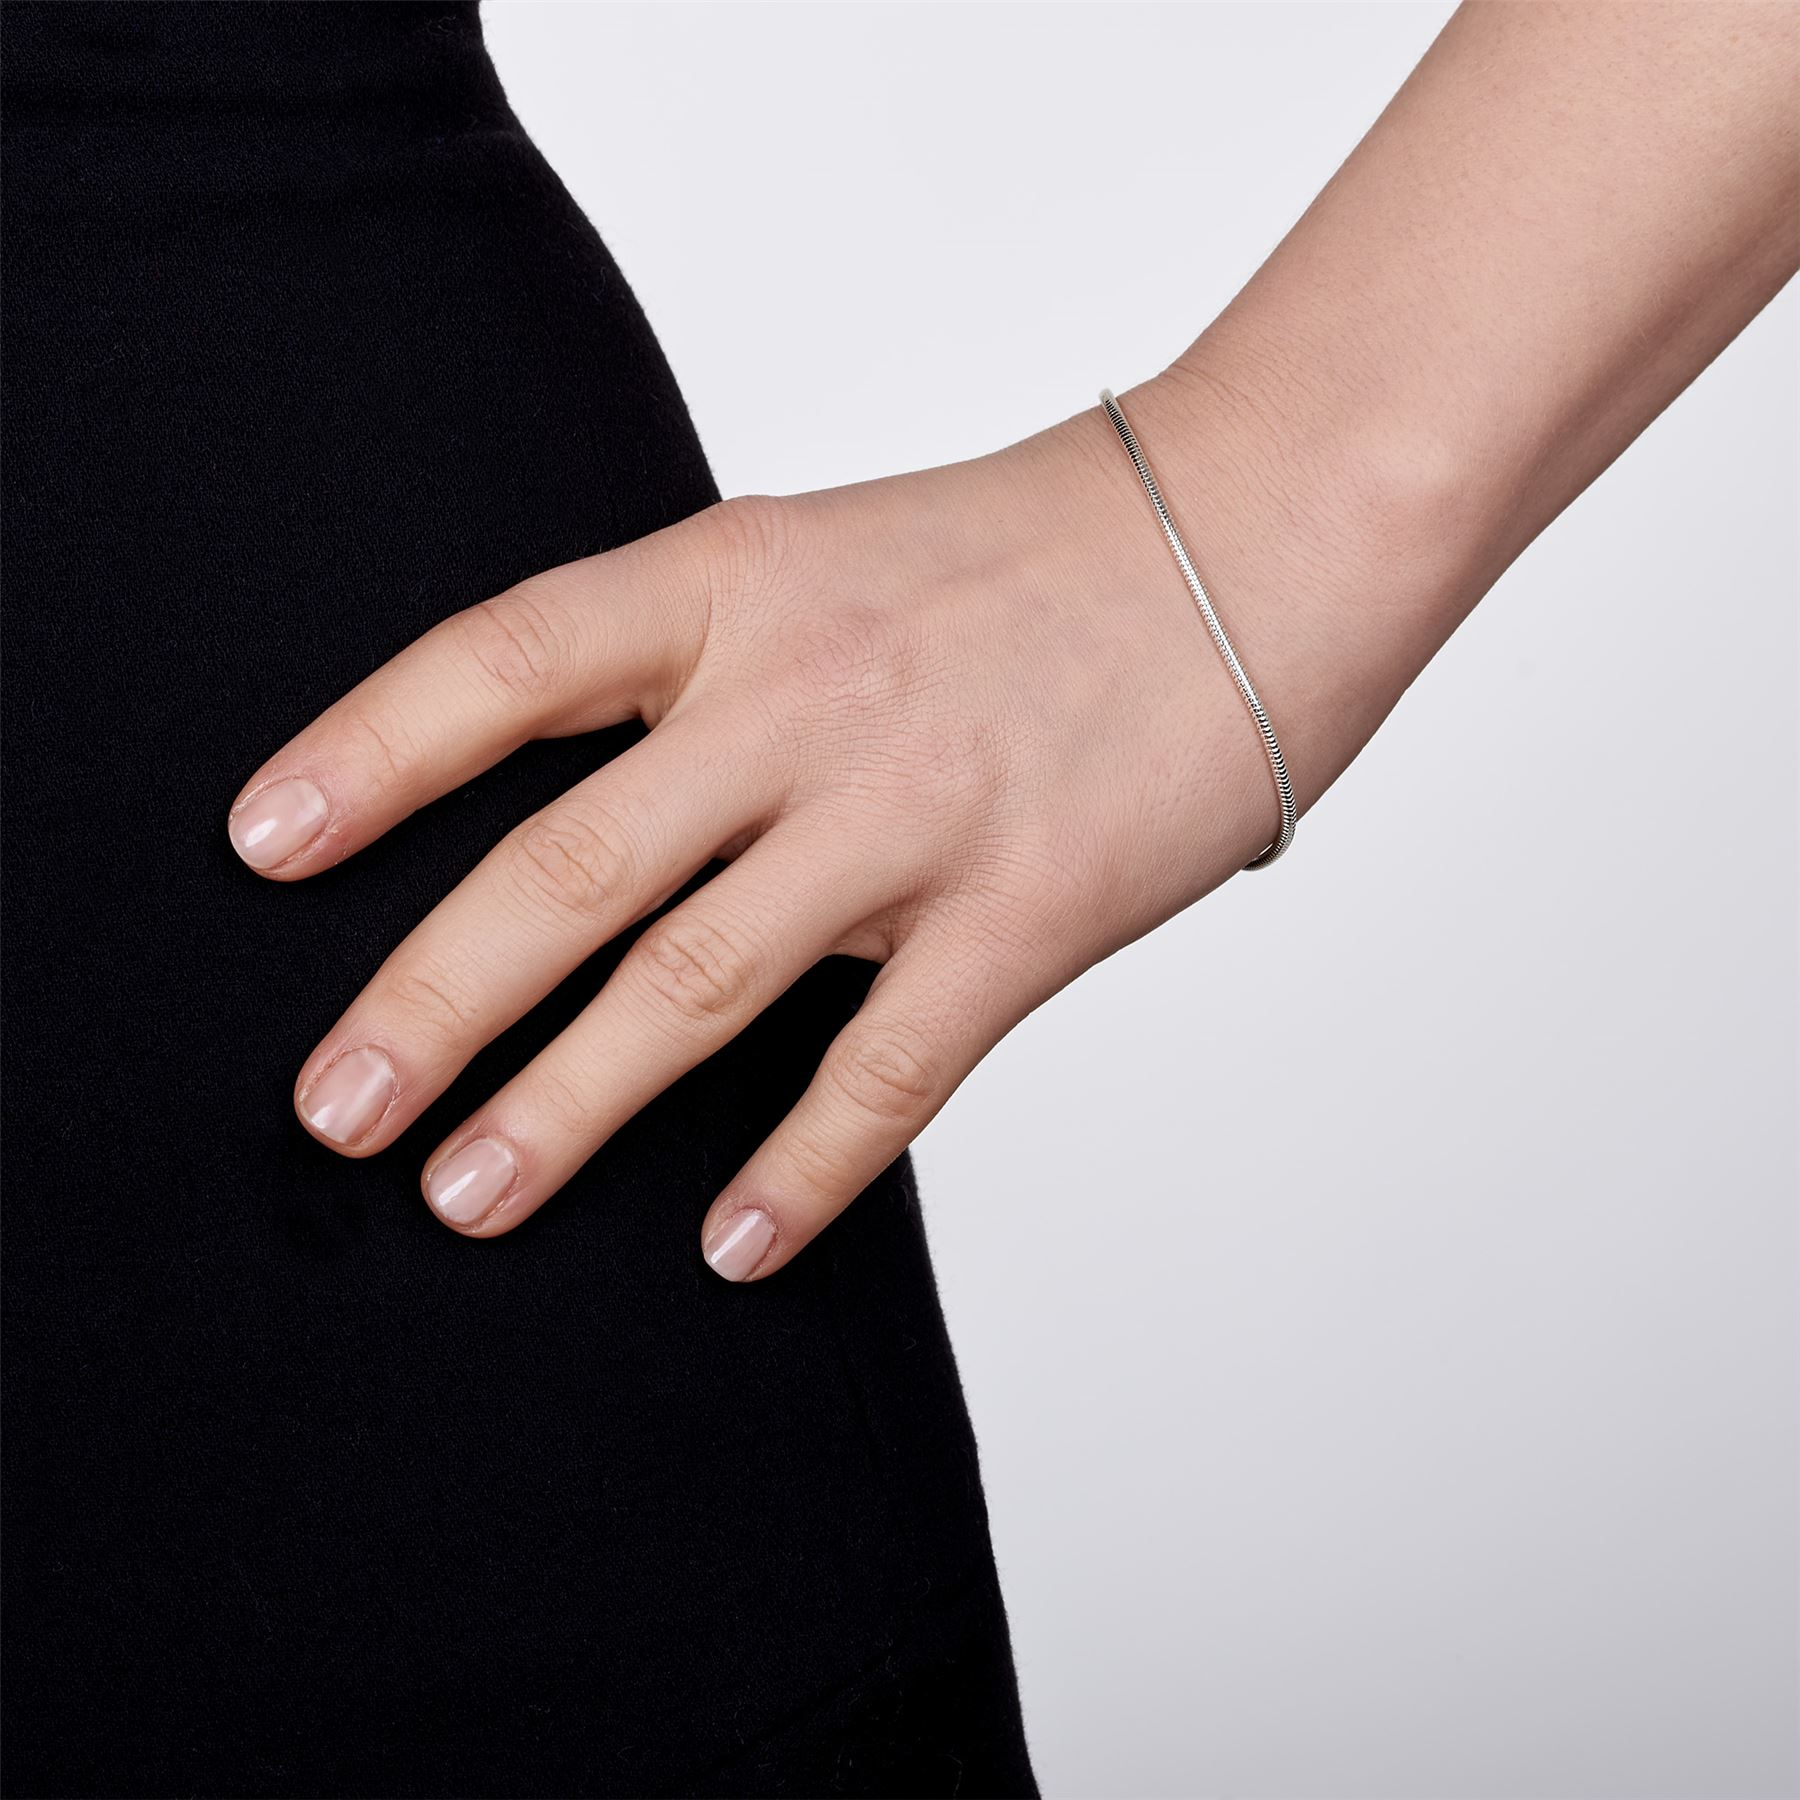 Amberta-Jewelry-Genuine-925-Sterling-Silver-Bracelet-Bangle-Chain-Made-in-Italy thumbnail 40